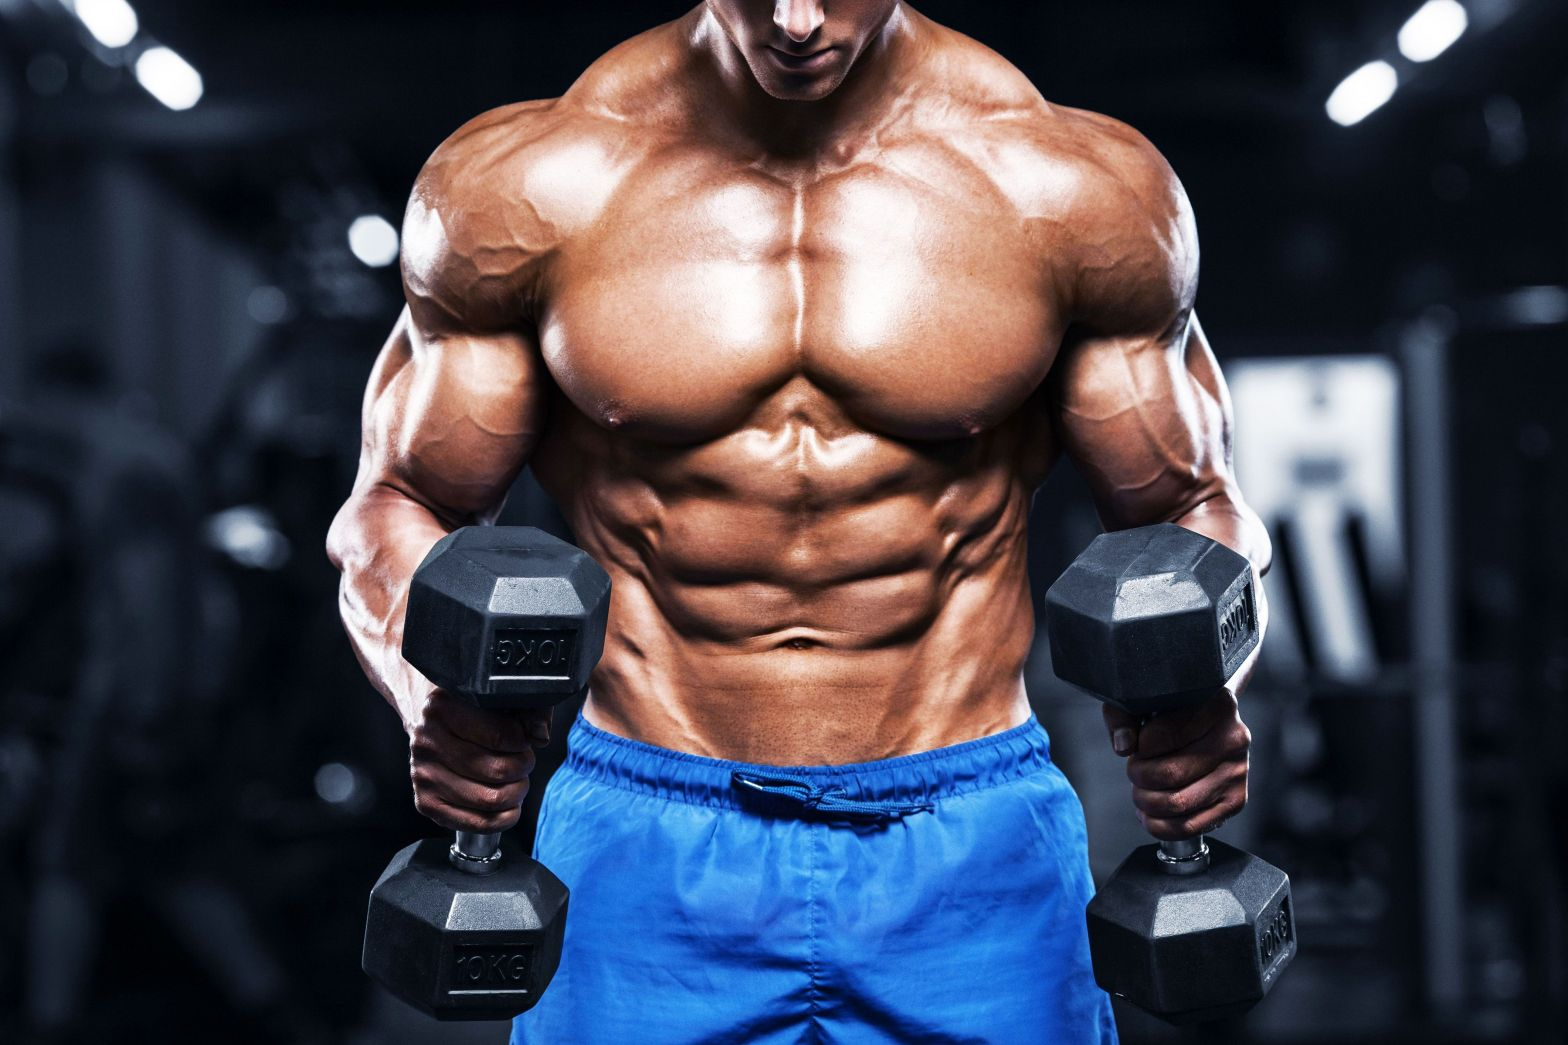 How To Gain Muscle Fast 10 Tips For Men For Protei